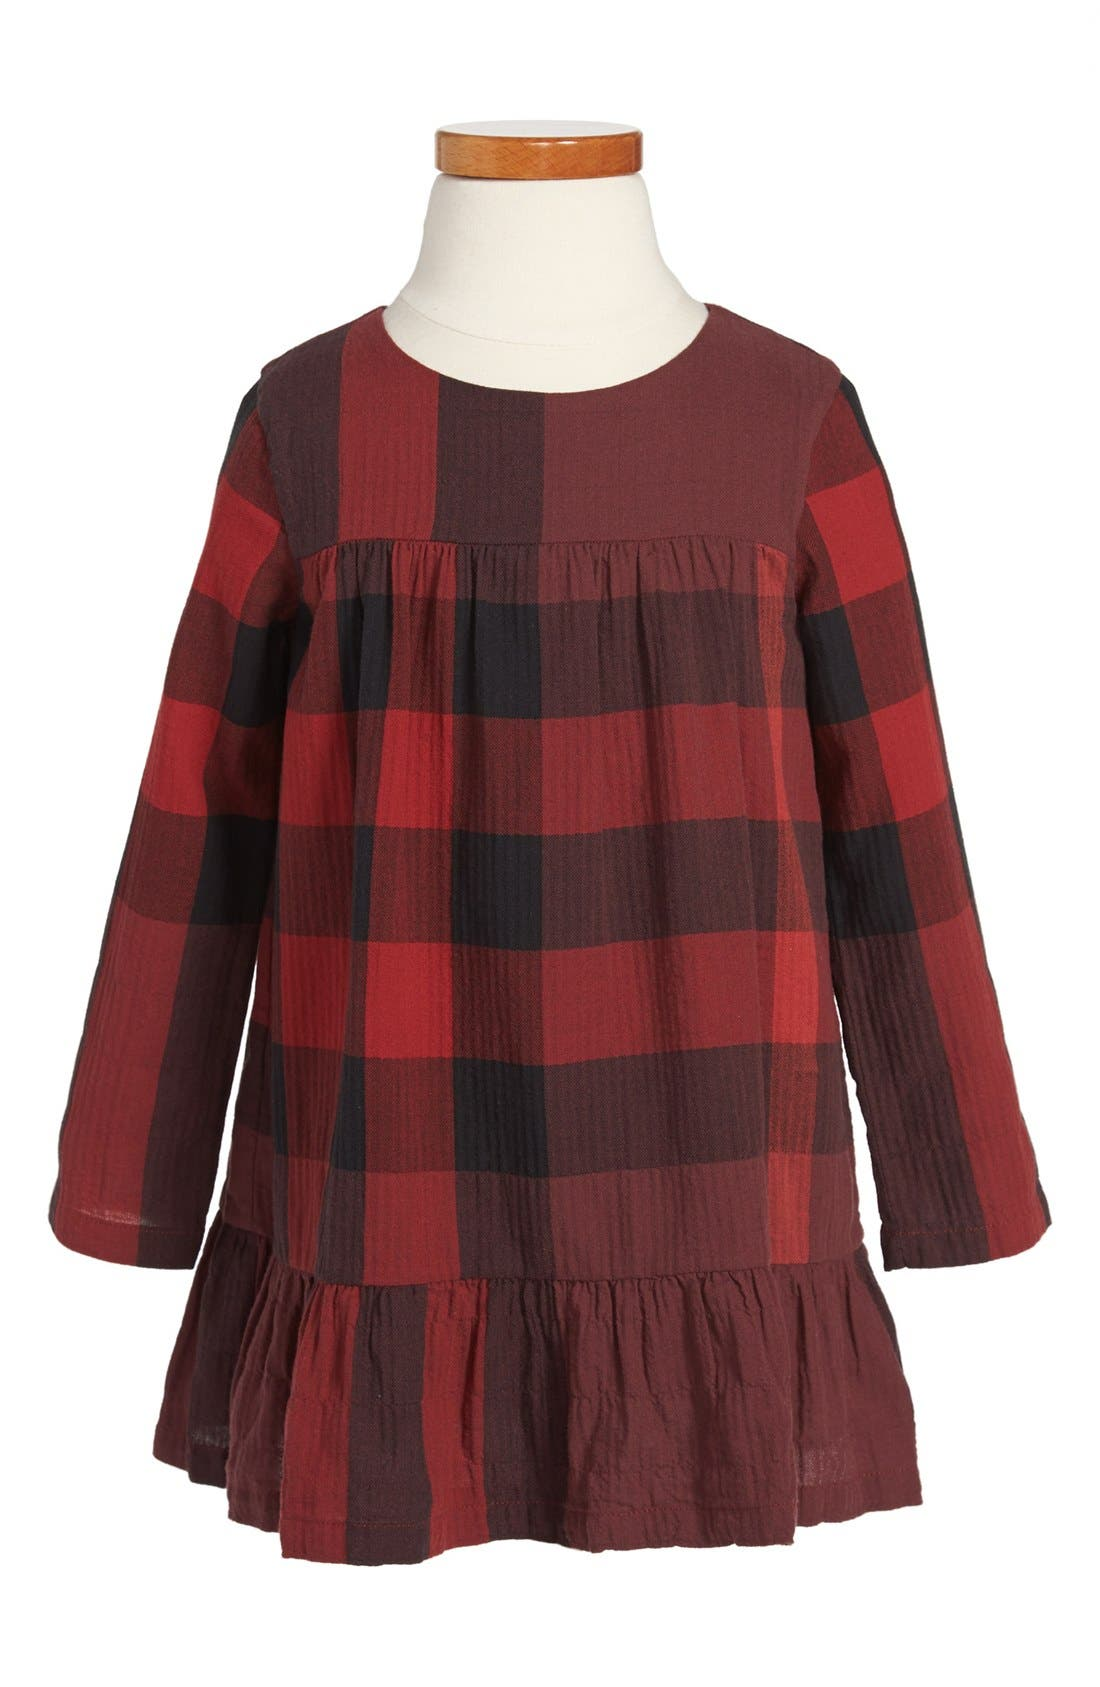 Alternate Image 1 Selected - Burberry 'Idina' Woven Dress (Baby Girls)